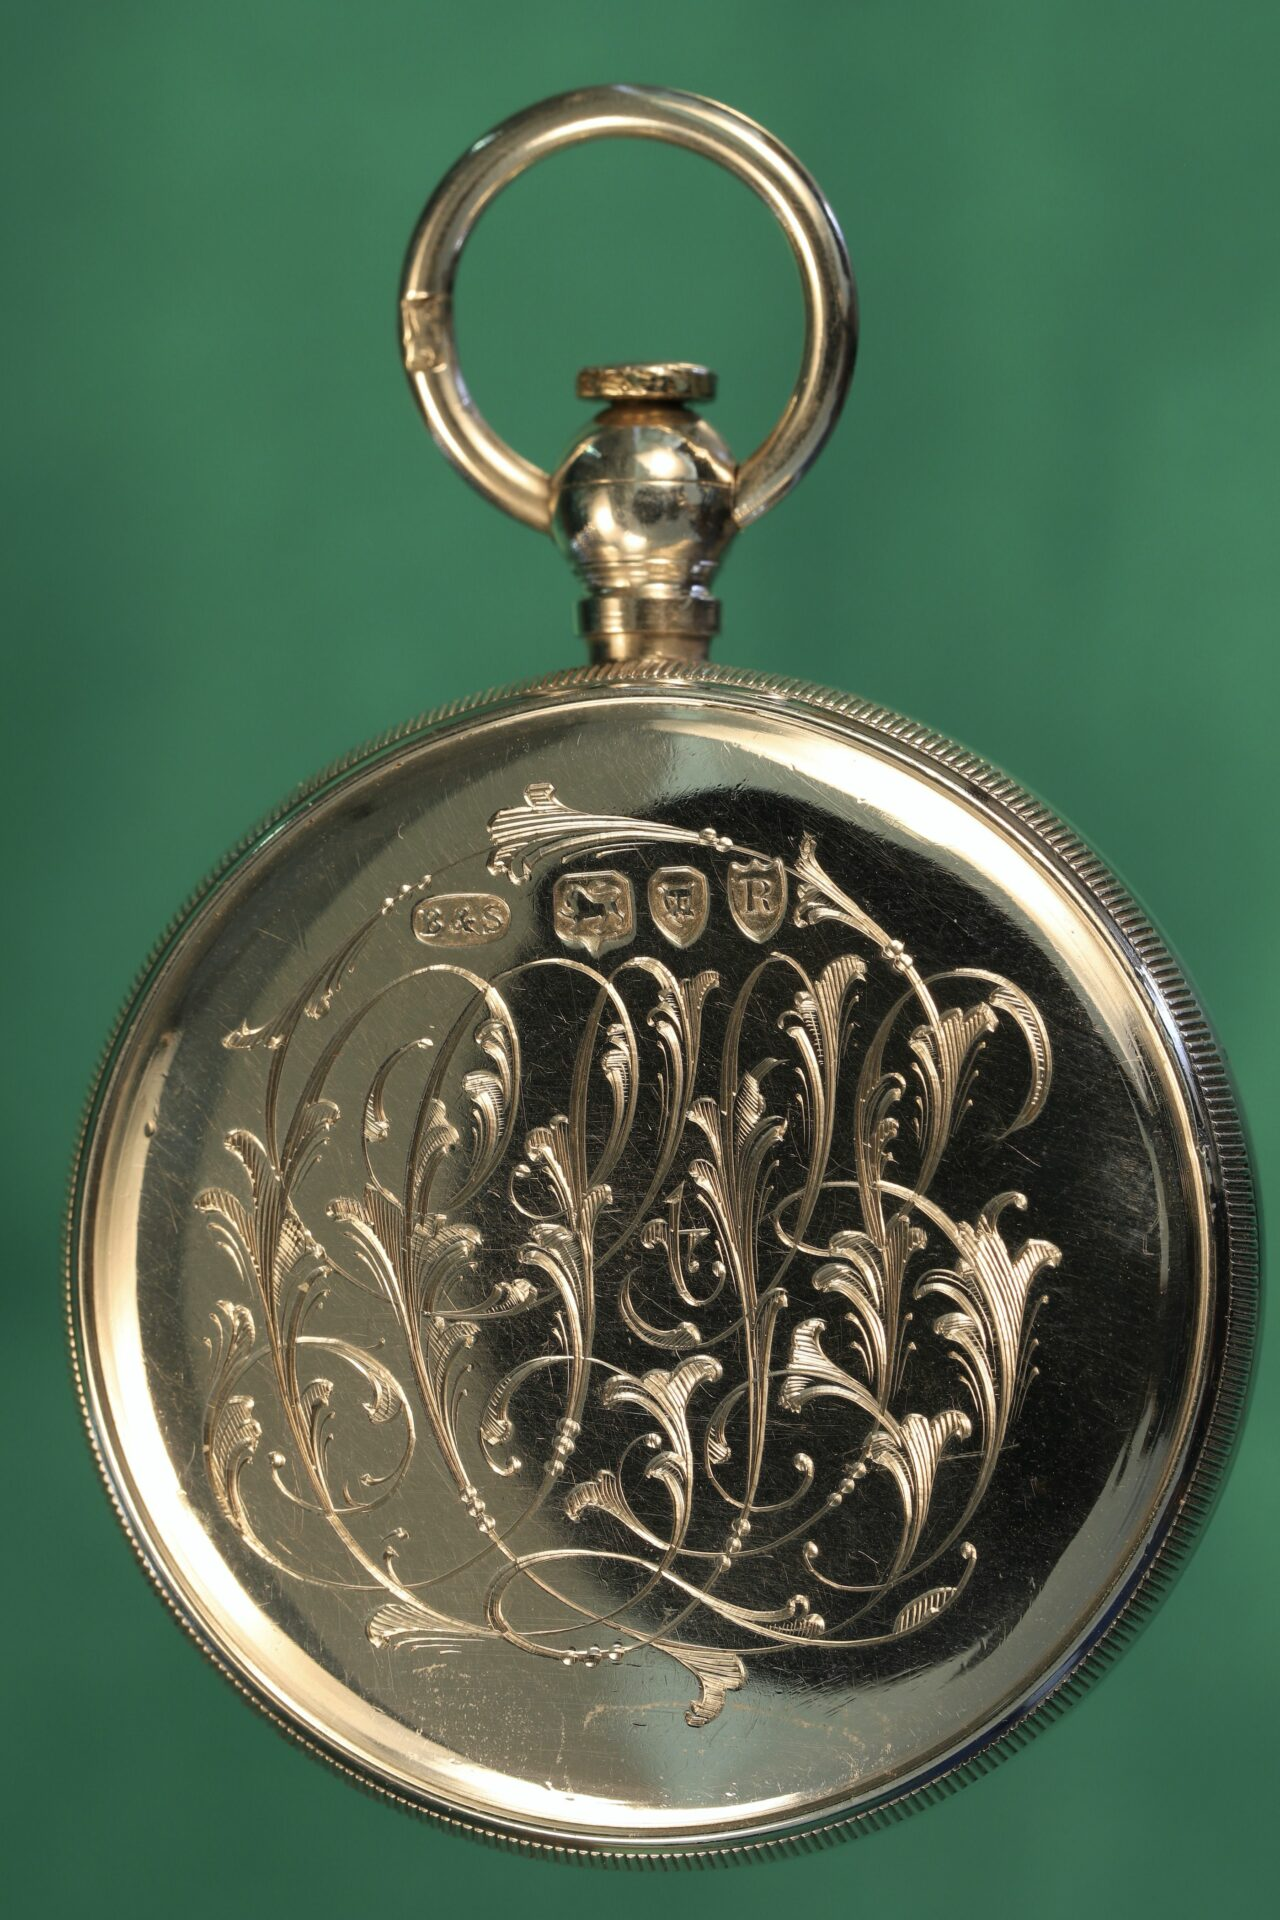 Image of reverse of compass from Cairns Silver Pocket Barometer Compendium c1892